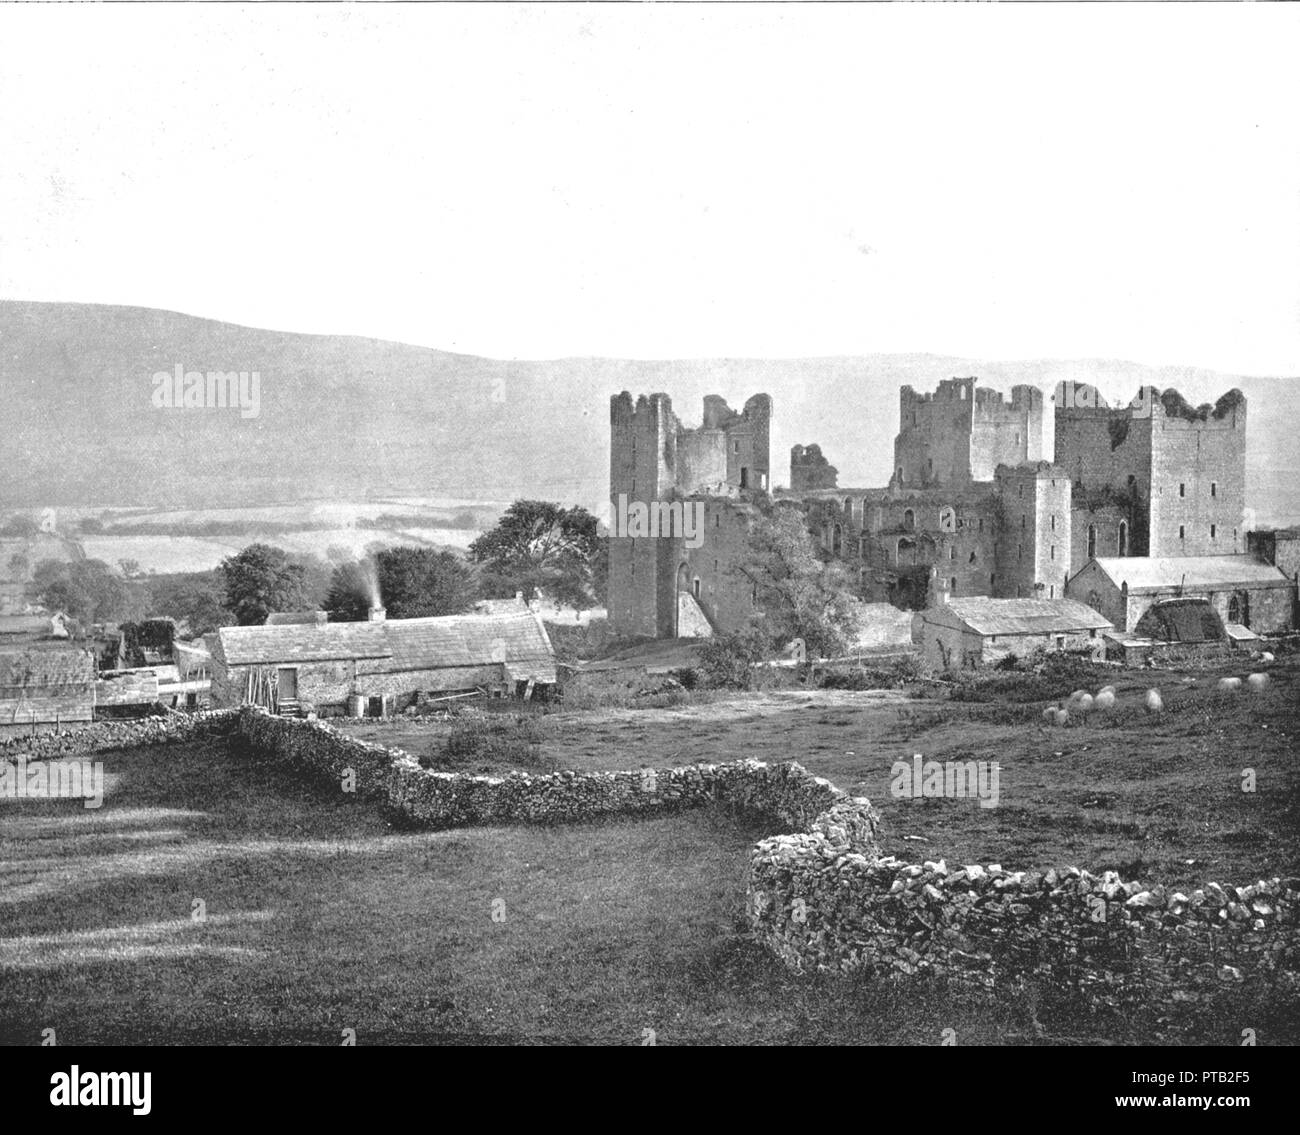 Bolton Castle, Wensleydale, North Yorkshire, 1894. Bolton Castle was built in the late 14th century by Richard le Scrope, a prominent soldier and courtier during the reign of Richard II and Lord Chancellor of England from 1378-1382. Mary, Queen of Scots was held at the castle in 1568-1569. It was partially damaged during the English Civil War. From Beautiful Britain; views of our stately homes. [The Werner Company of Chicago, 1894] - Stock Image